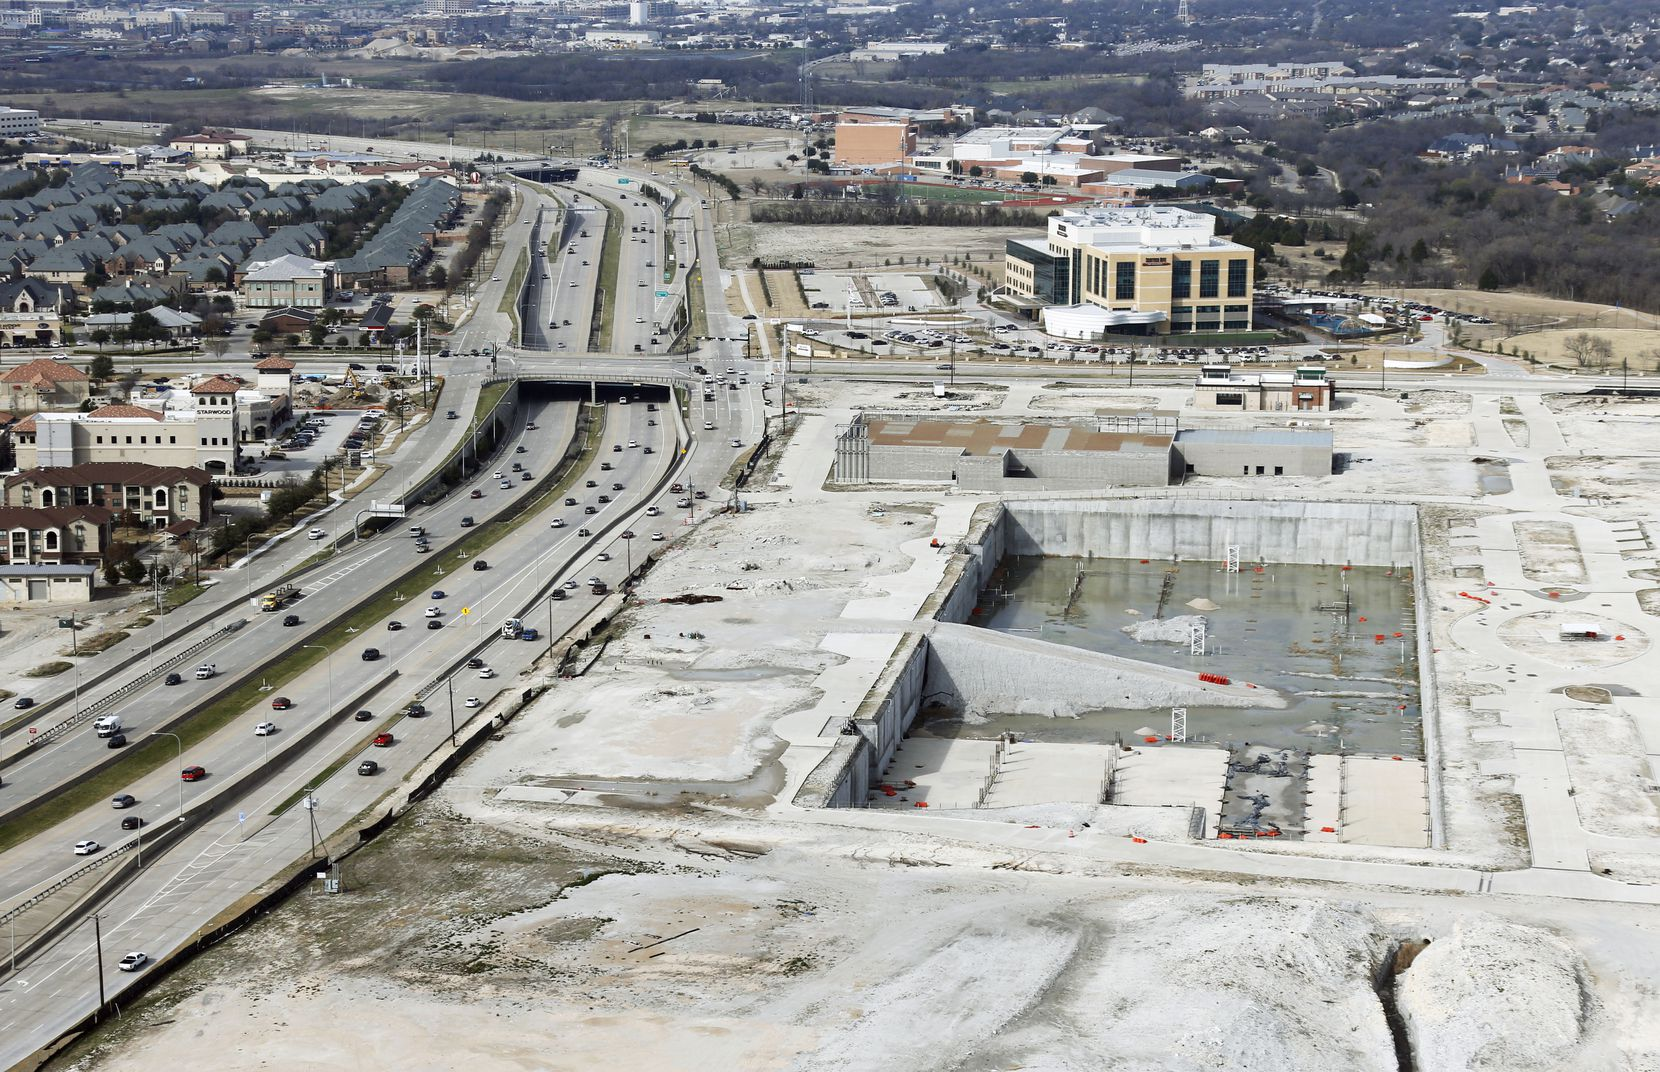 Wade Park sits unfinished next to the Dallas North Tollway in Frisco.